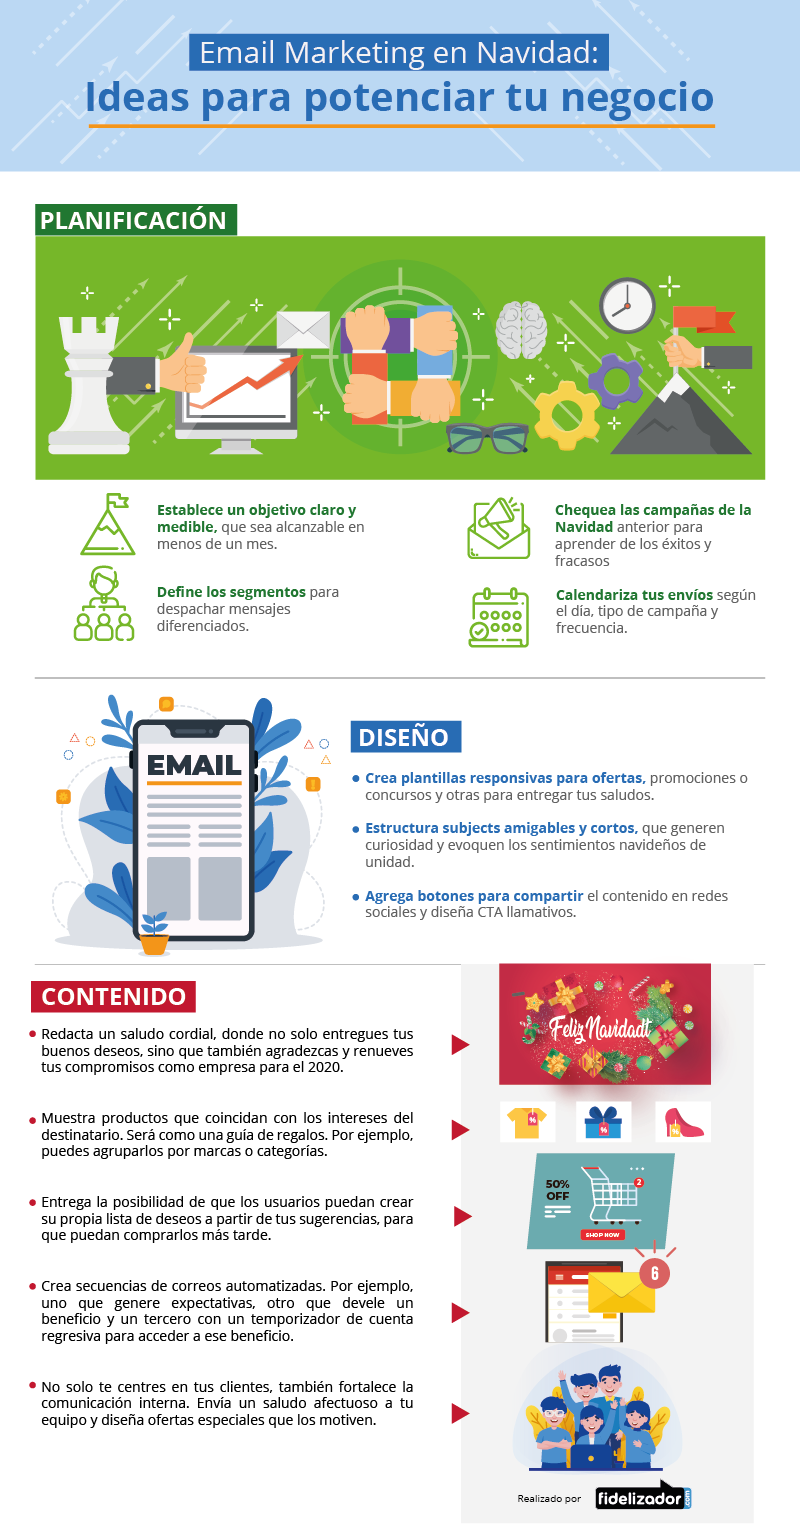 Email Marketing en Navidad